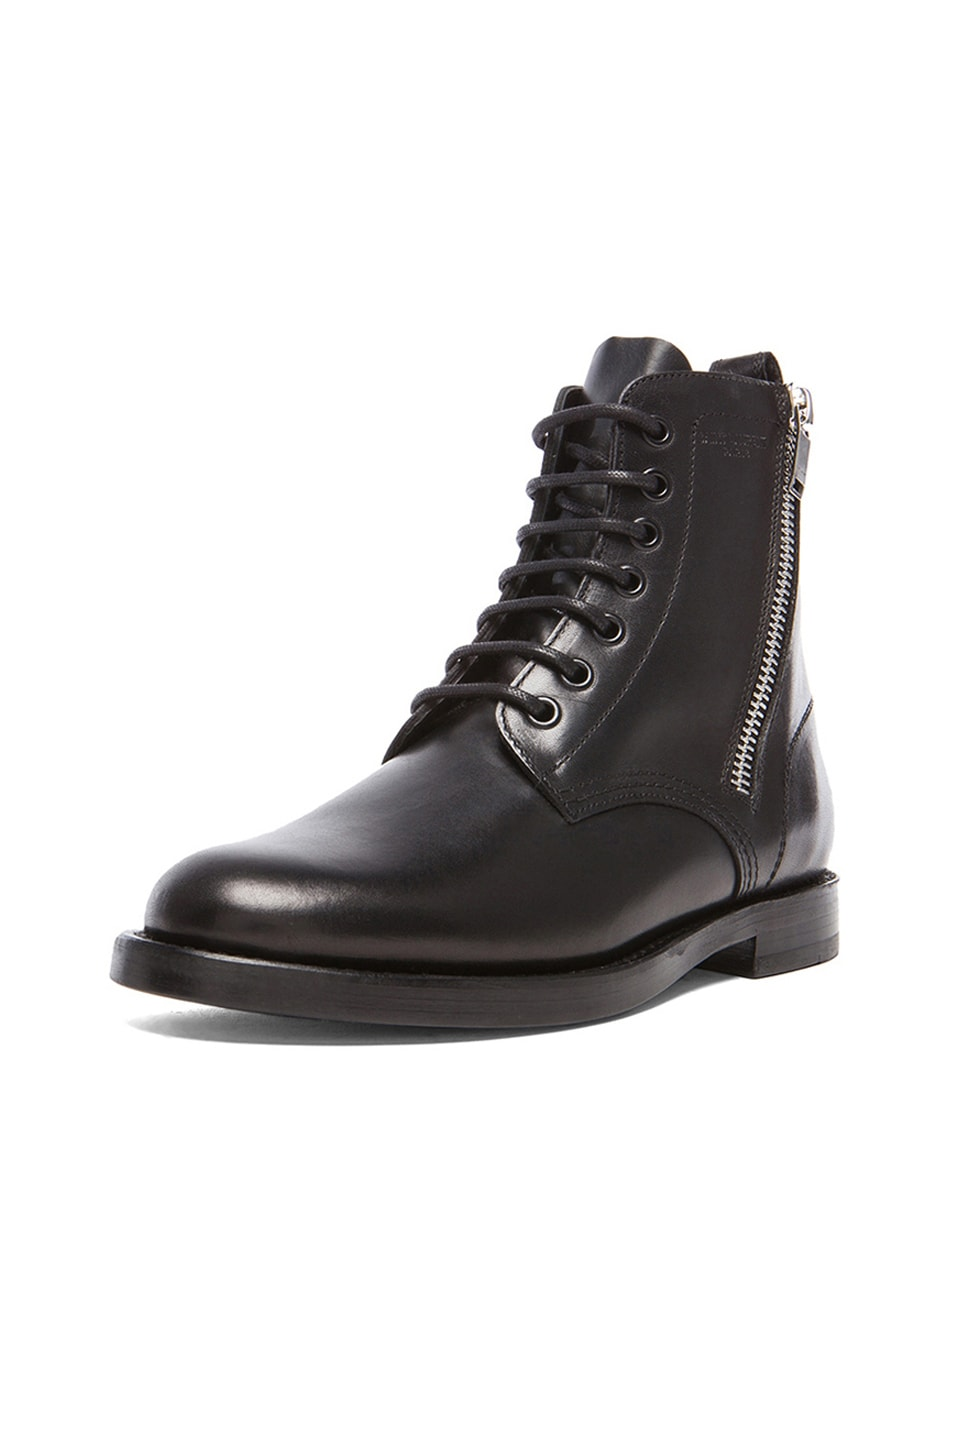 Image 2 of Saint Laurent Leather Ranger Zipper Combat Leather Boots in Black